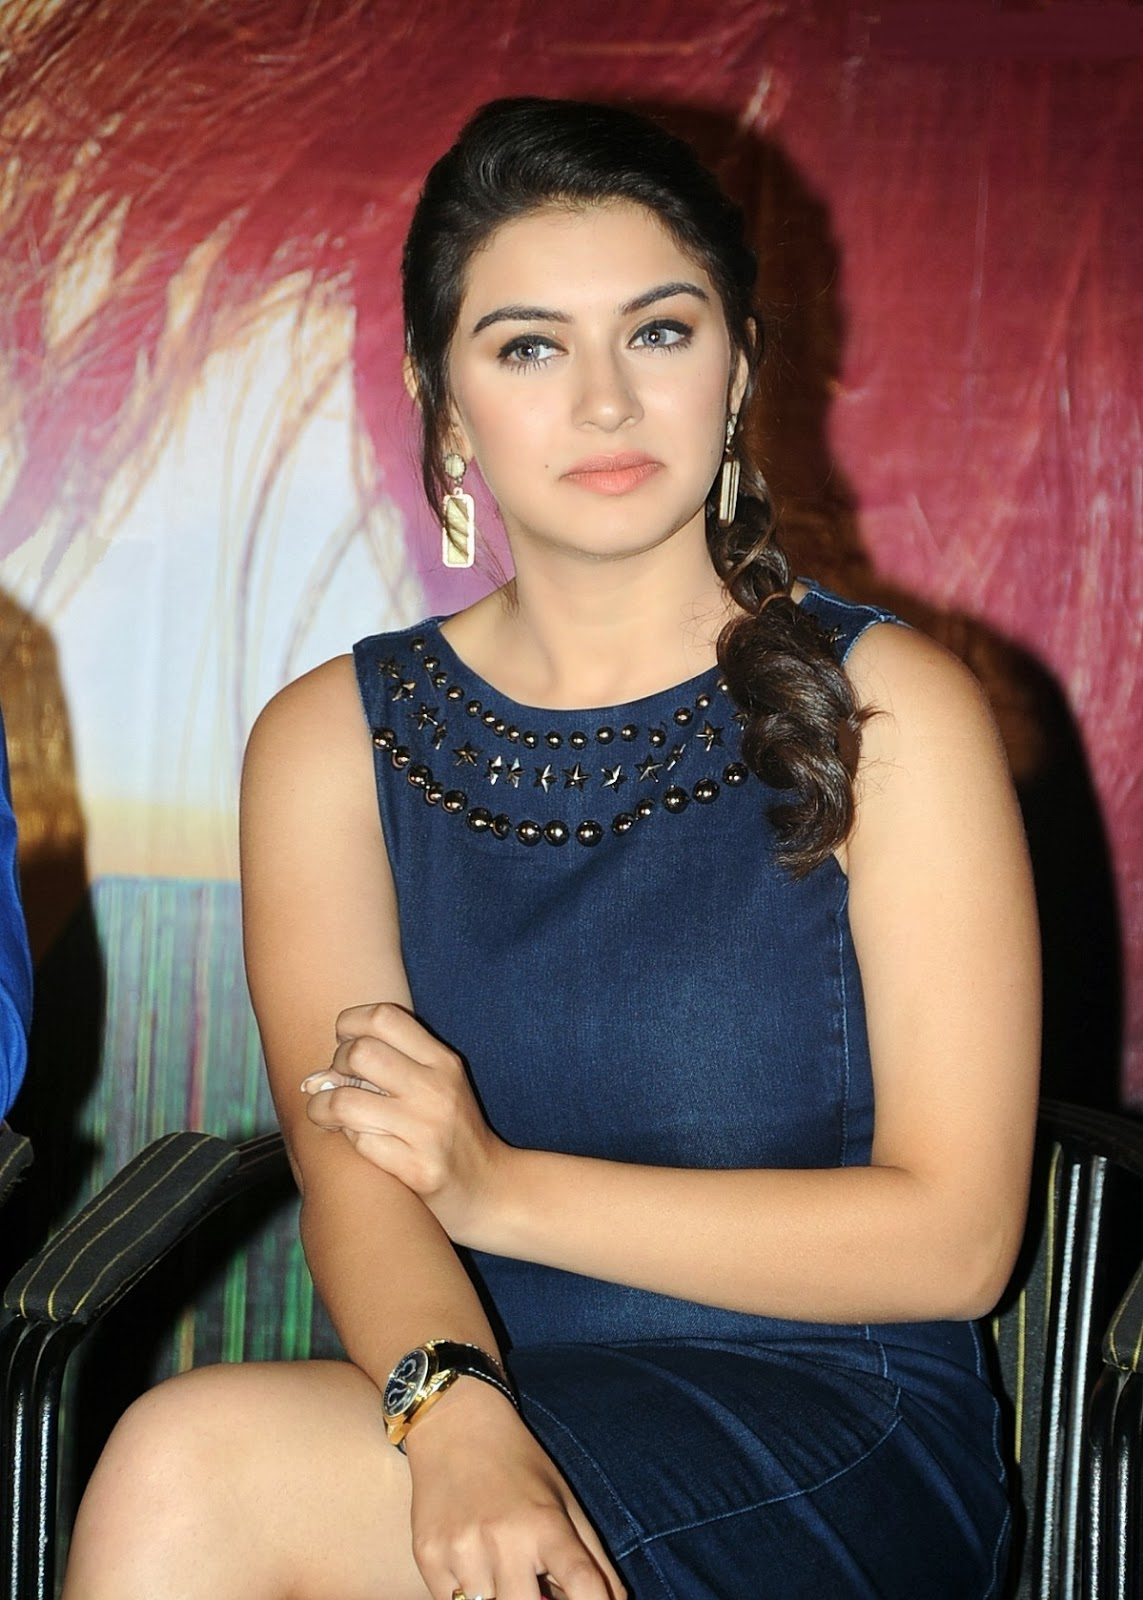 You Hansika motwani high quality nude pictures what